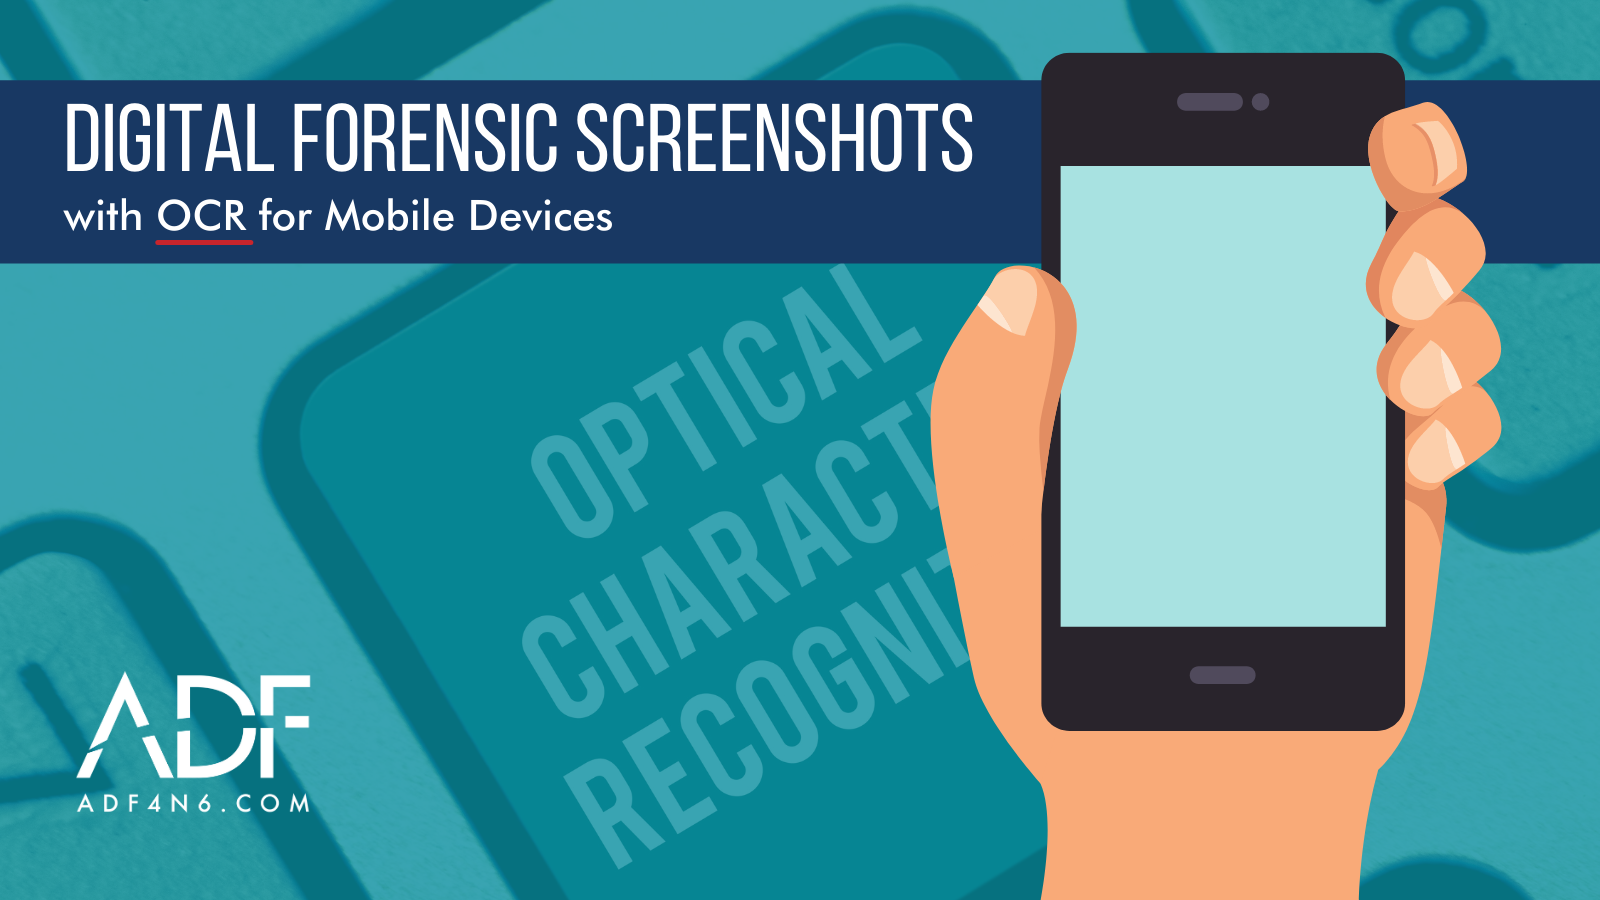 Digital Forensic Screenshots with OCR for Mobile Devices